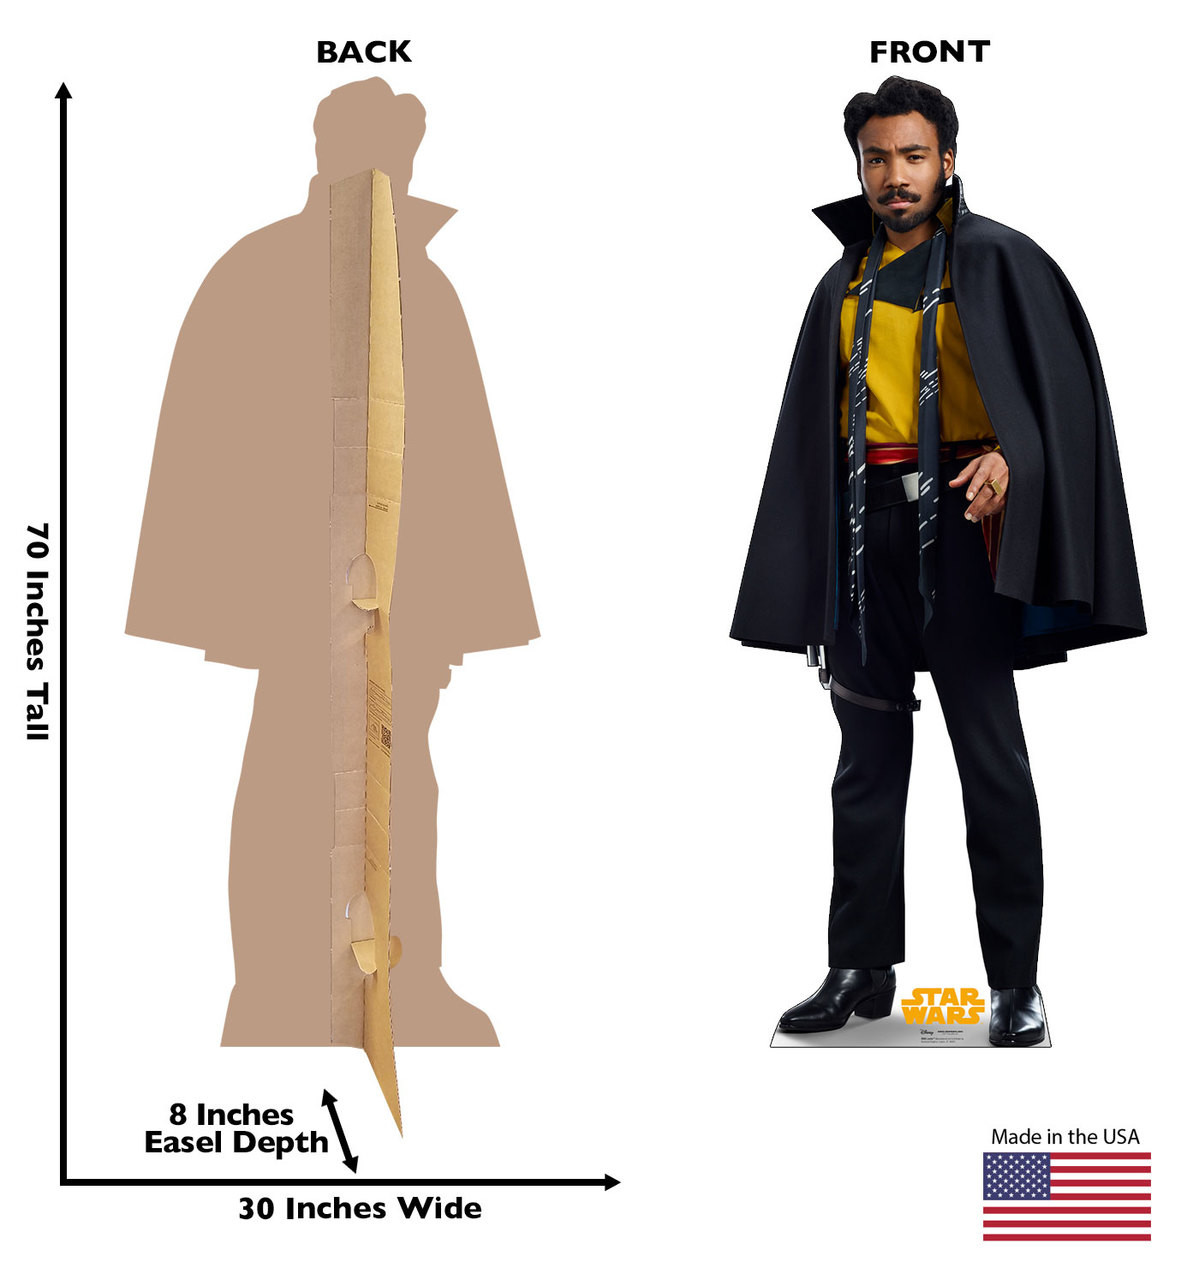 Lando™ Life-size cardboard standee back and front with dimensions.